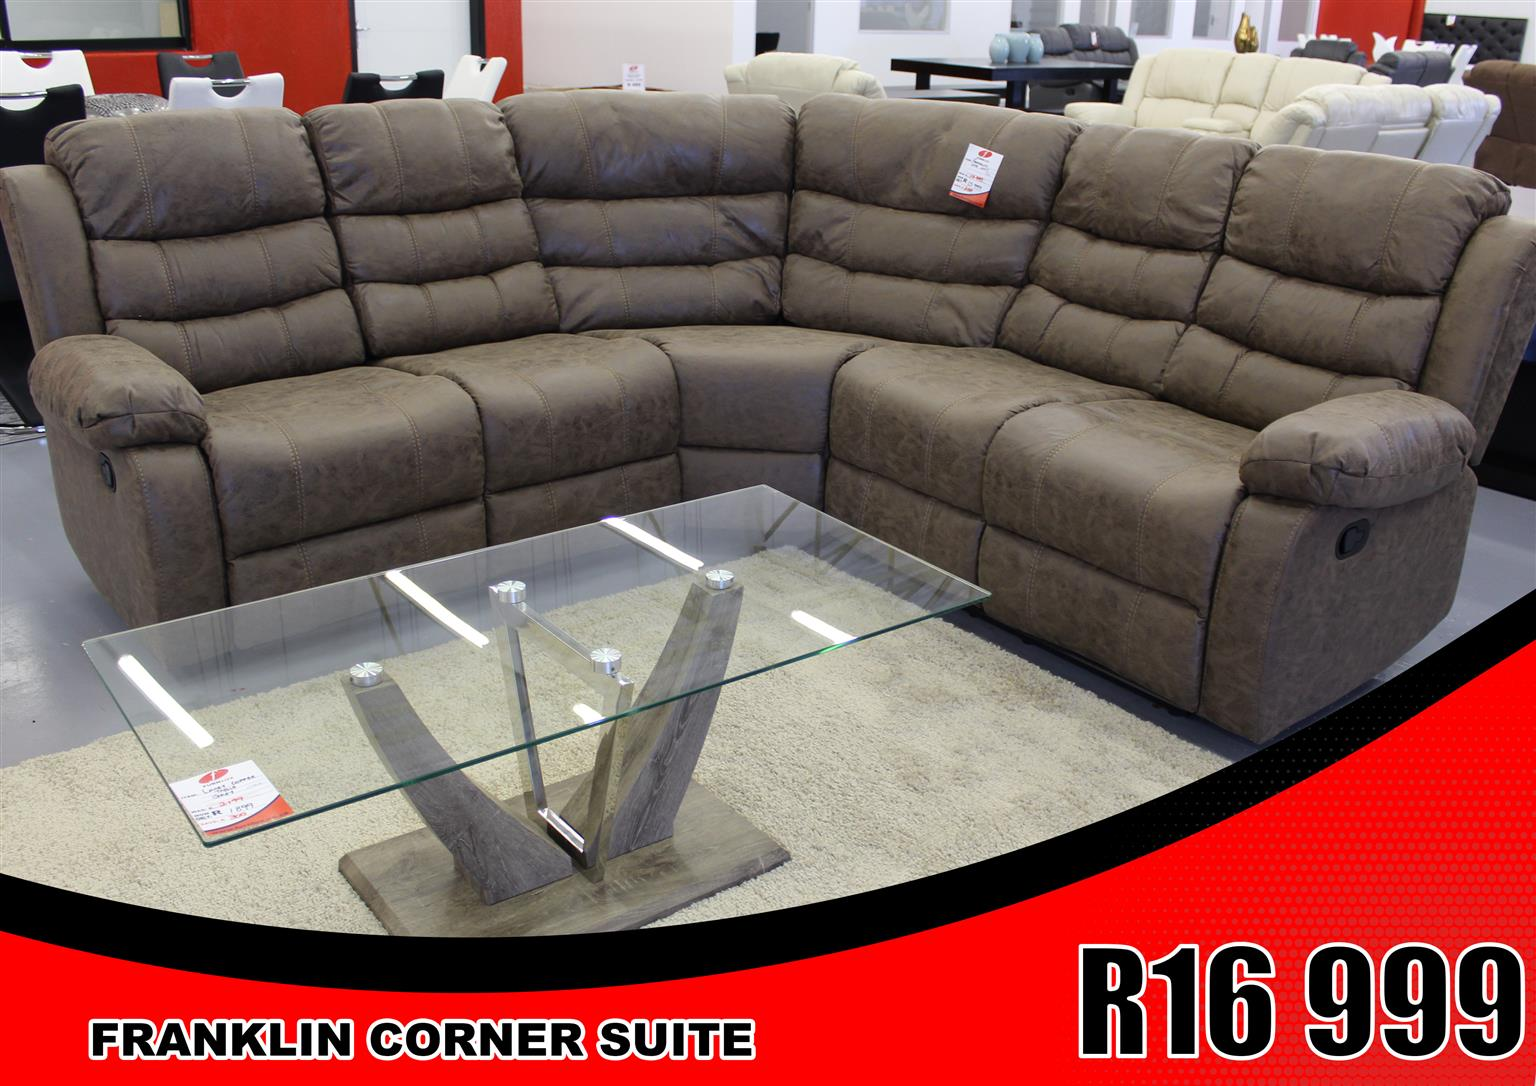 CORNER SUITE BRAND NEW FRANKLIN CORNER COUCH FOR ONLY R 16 999!!!!!!!!!!!!!!!!!!!